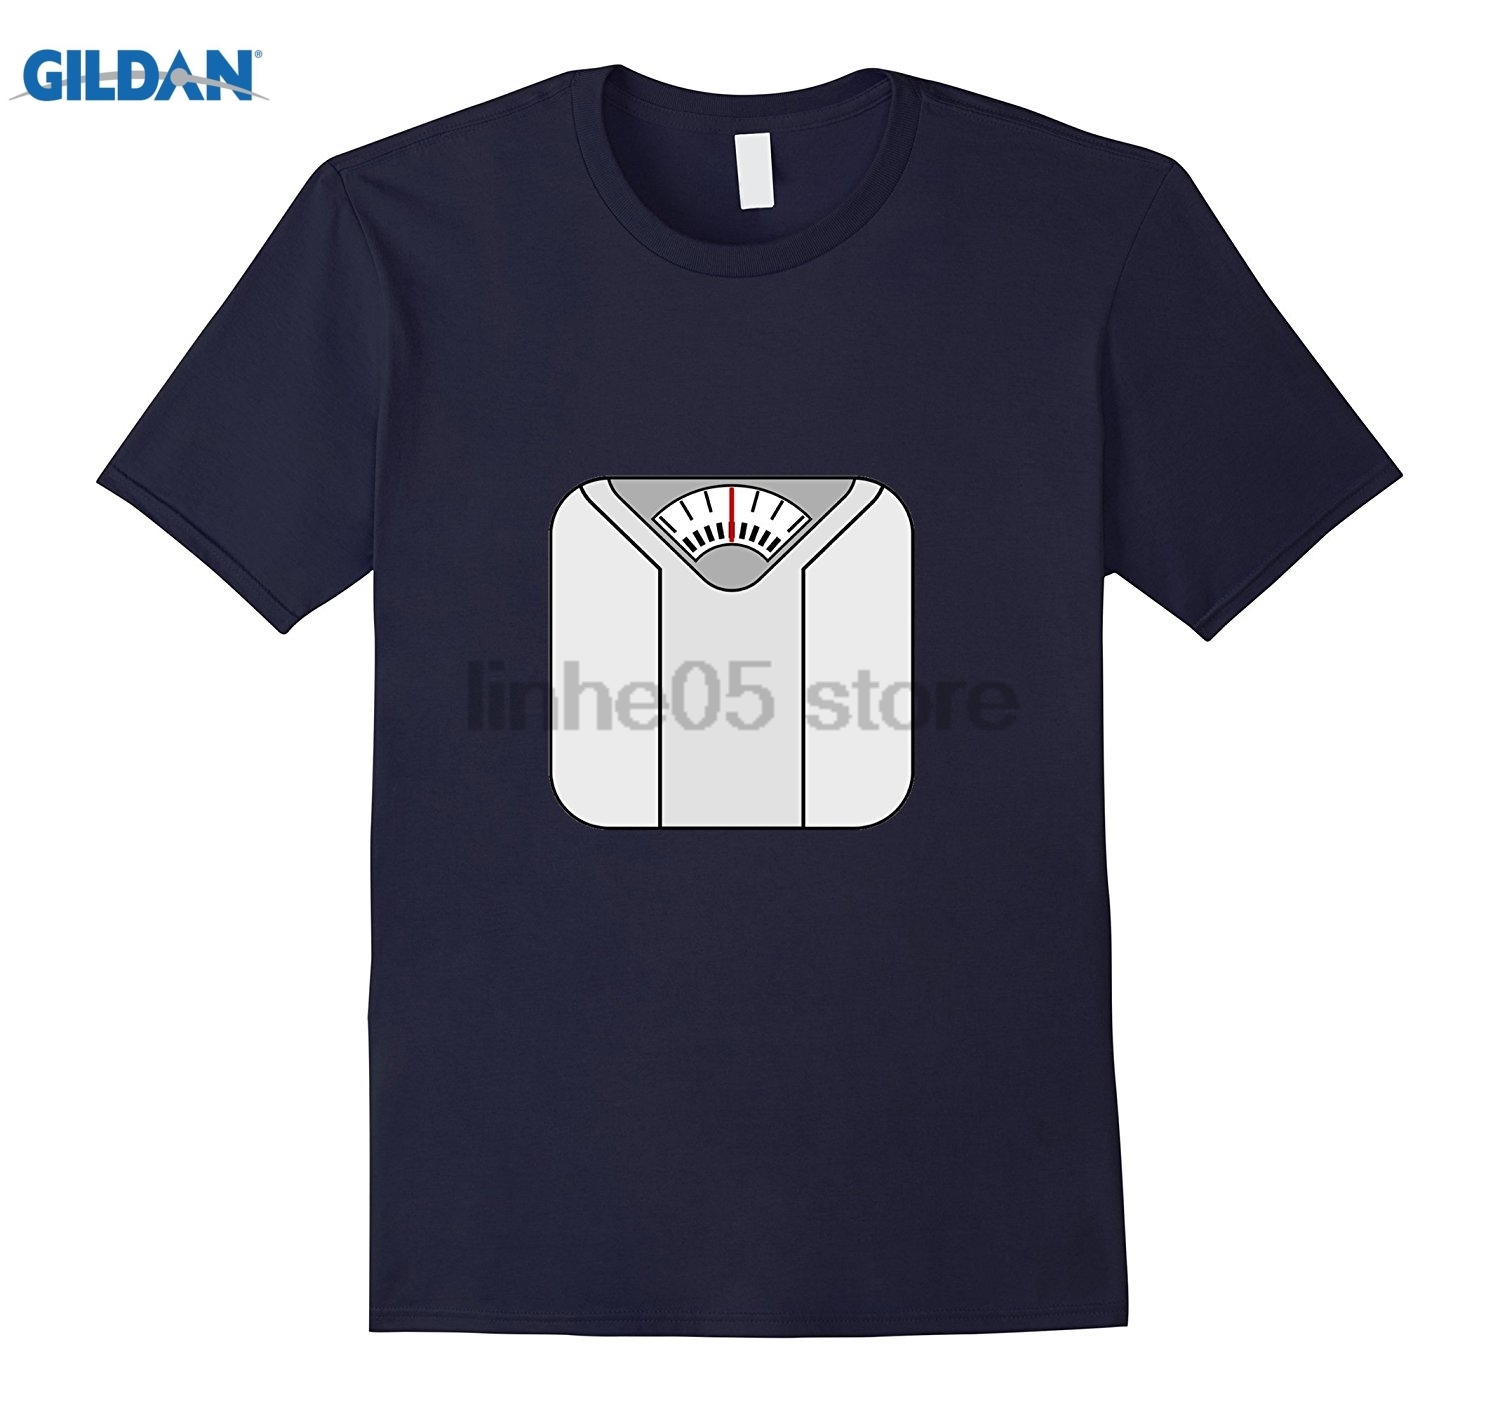 GILDAN Dieting T-Shirt Bathroom Scale Weight Pounds Womens T-shirt